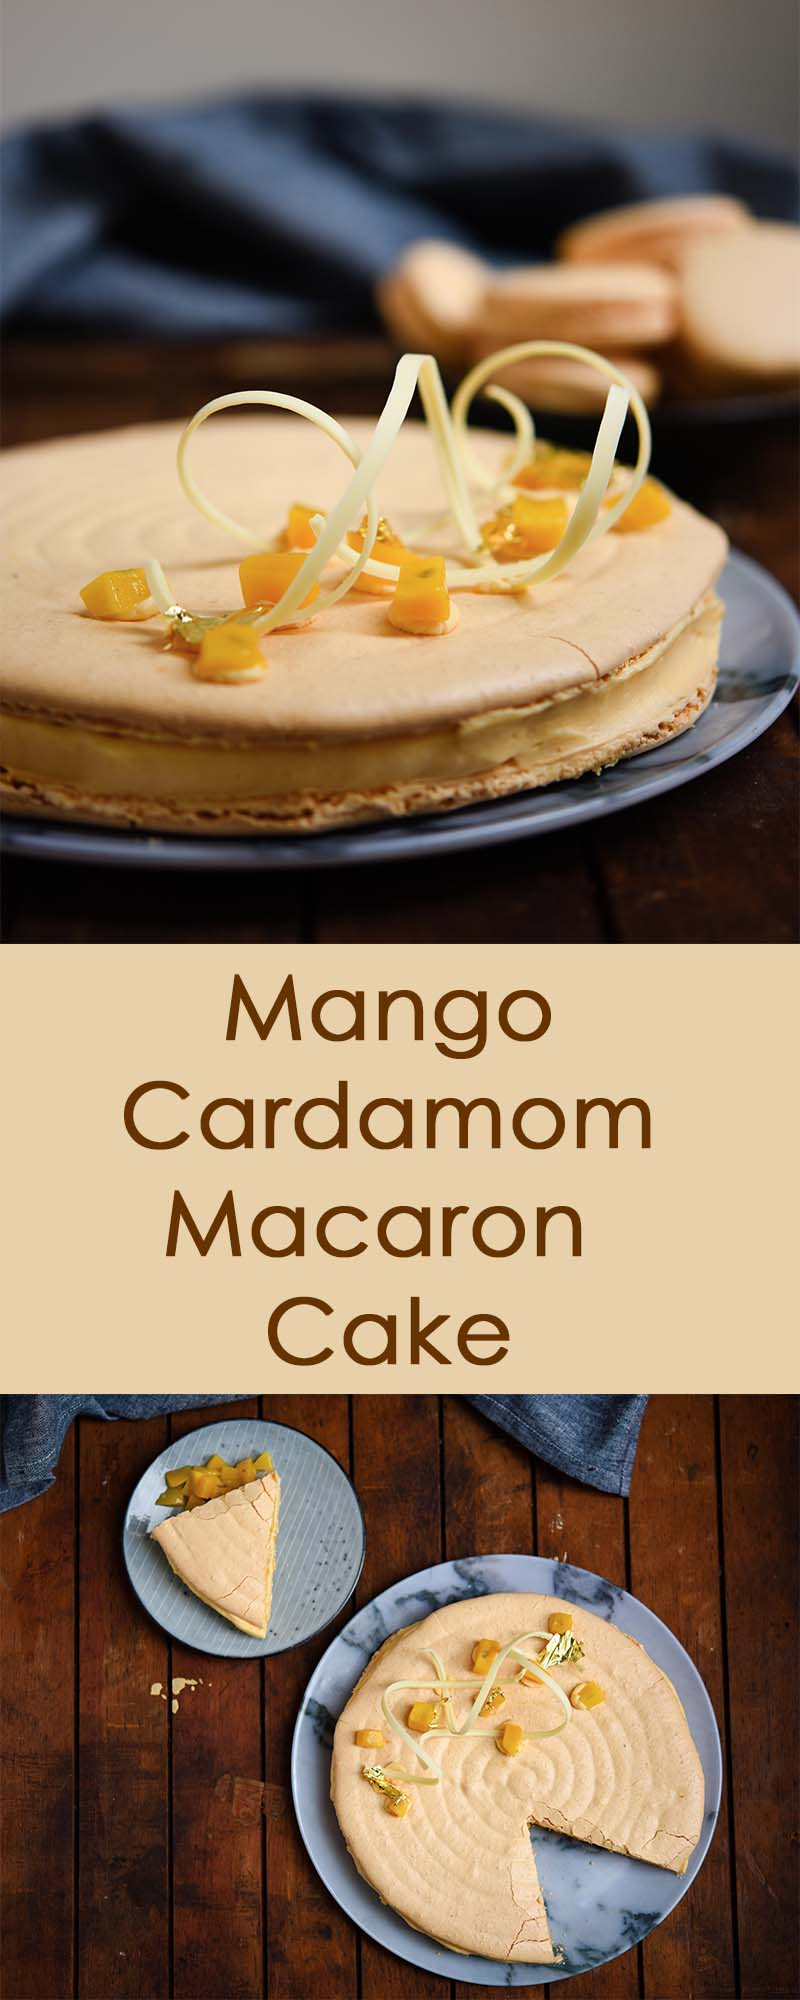 Mango & Cardamom Macaron Cake | Patisserie Makes Perfect